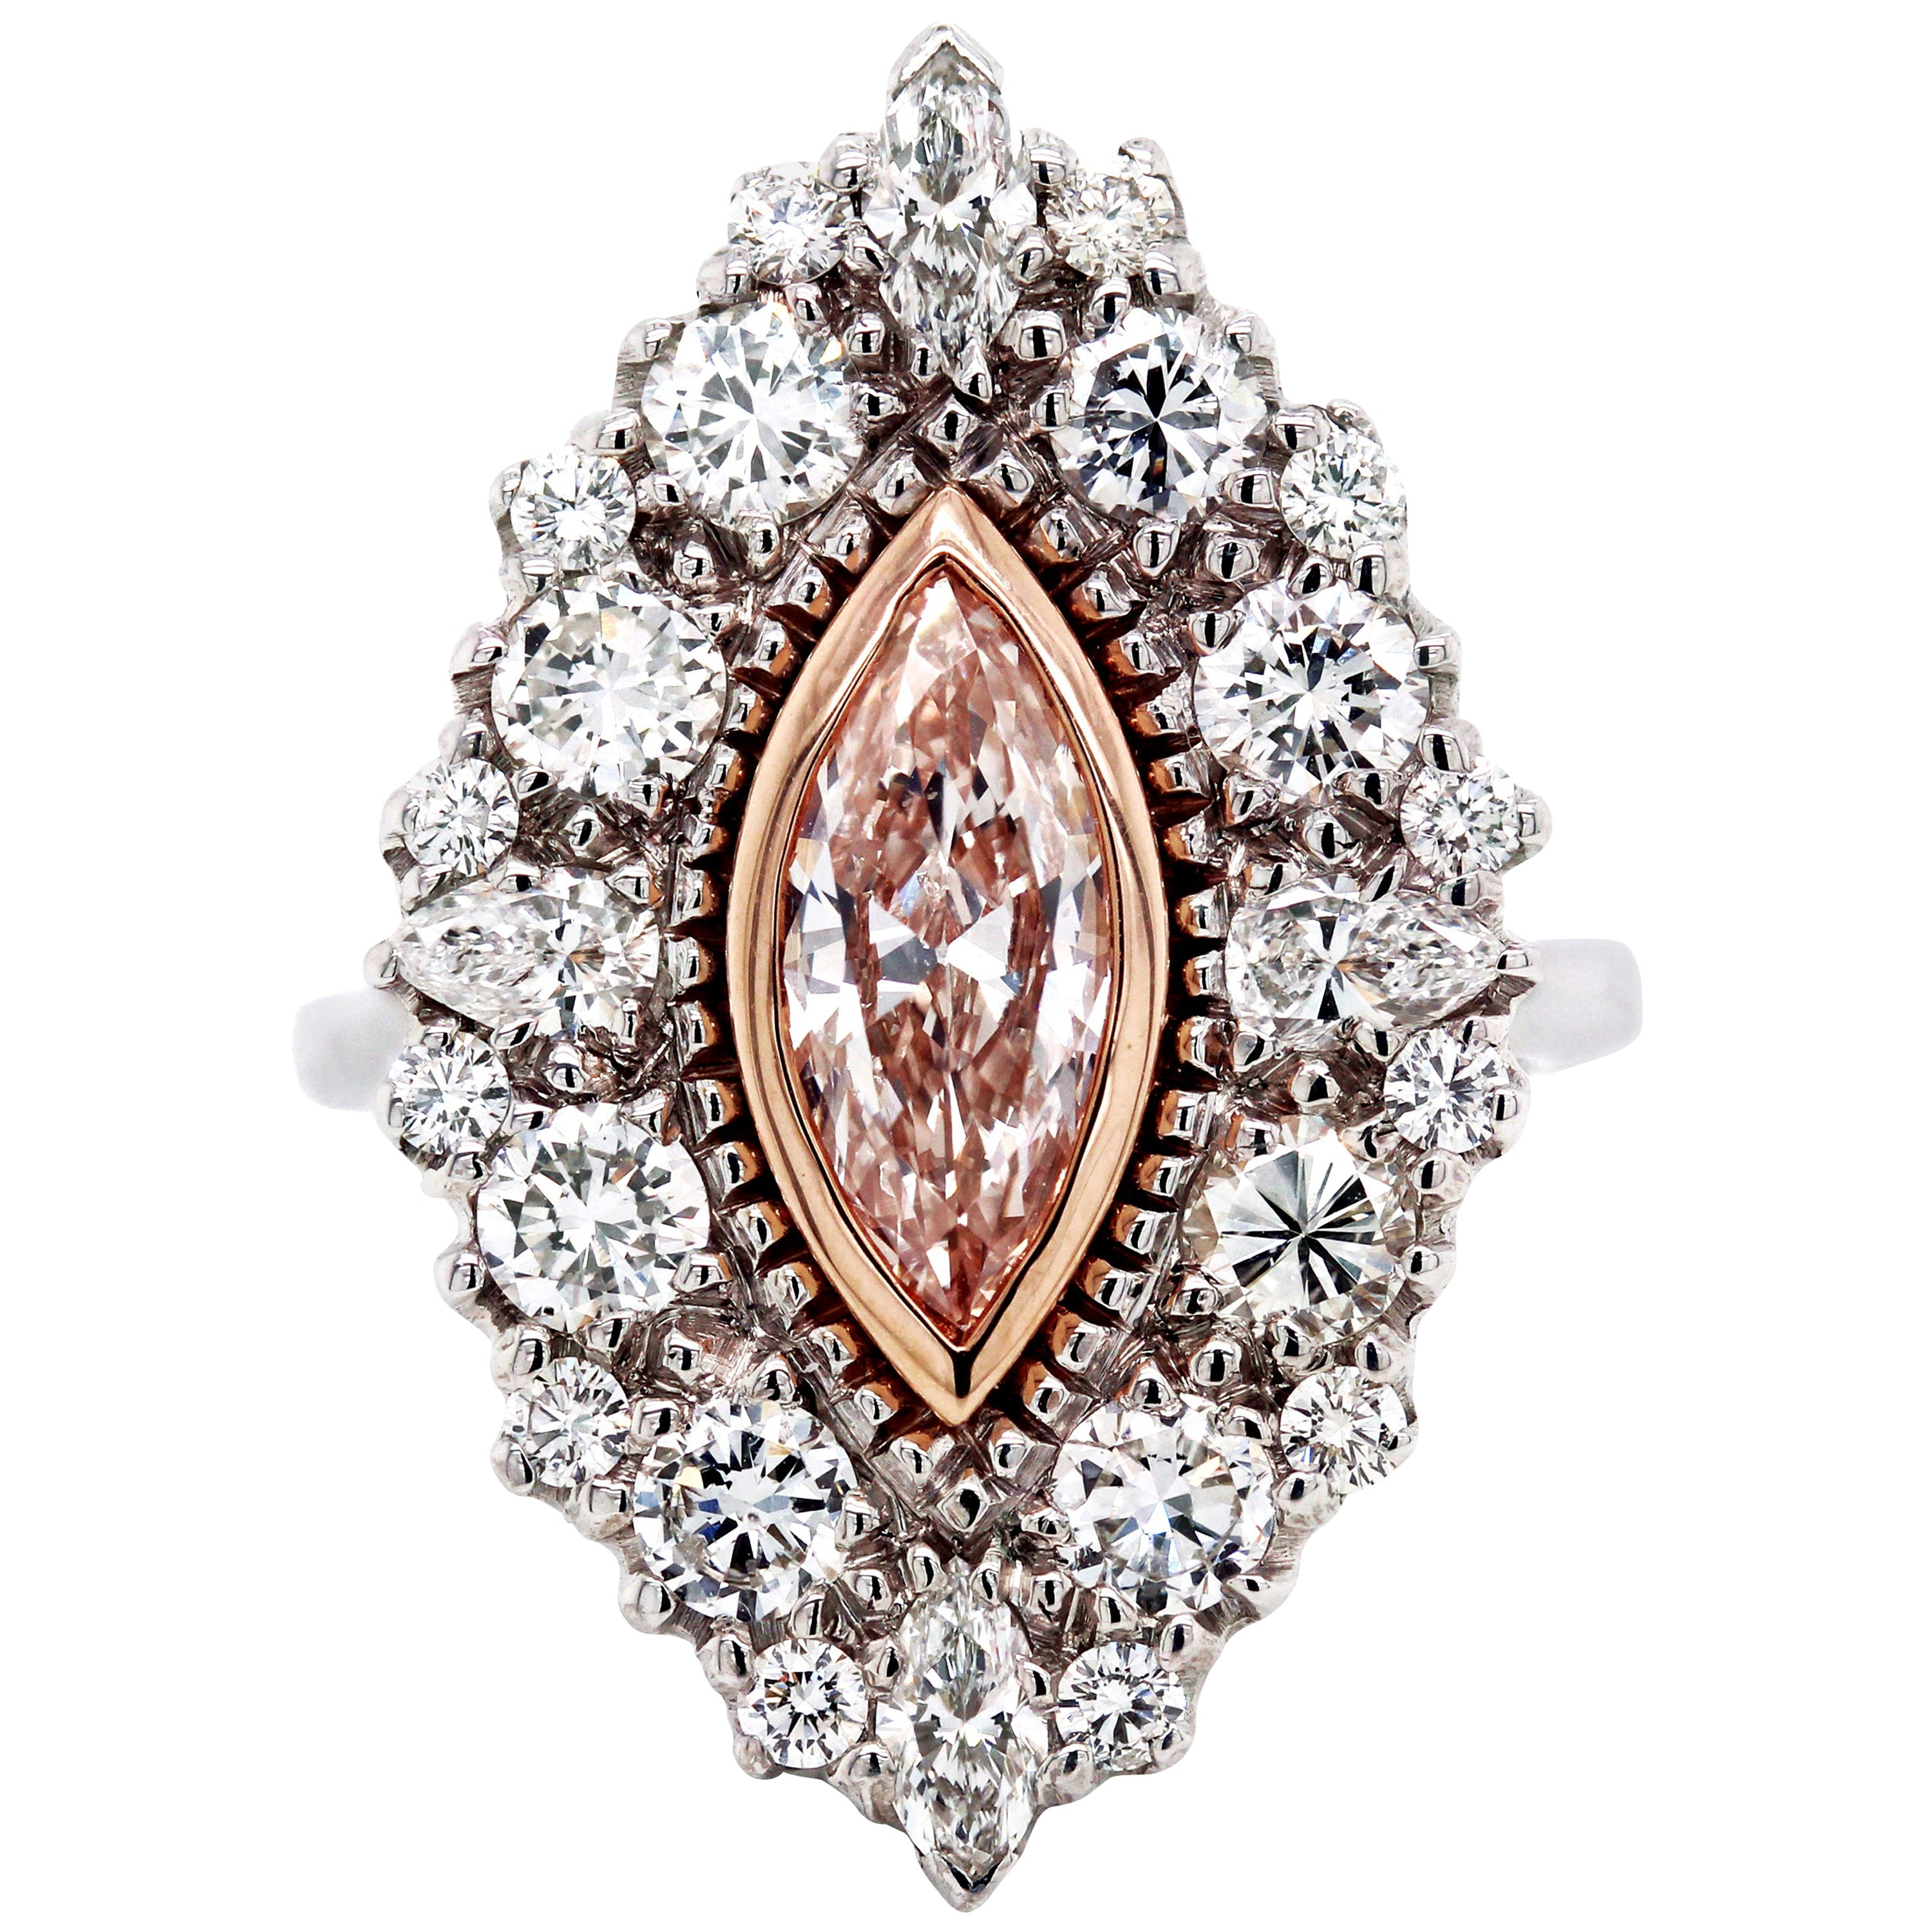 GIA Certified 0.88 Carat Marquise Pink Diamond 18 Karat White Gold Diamond Ring